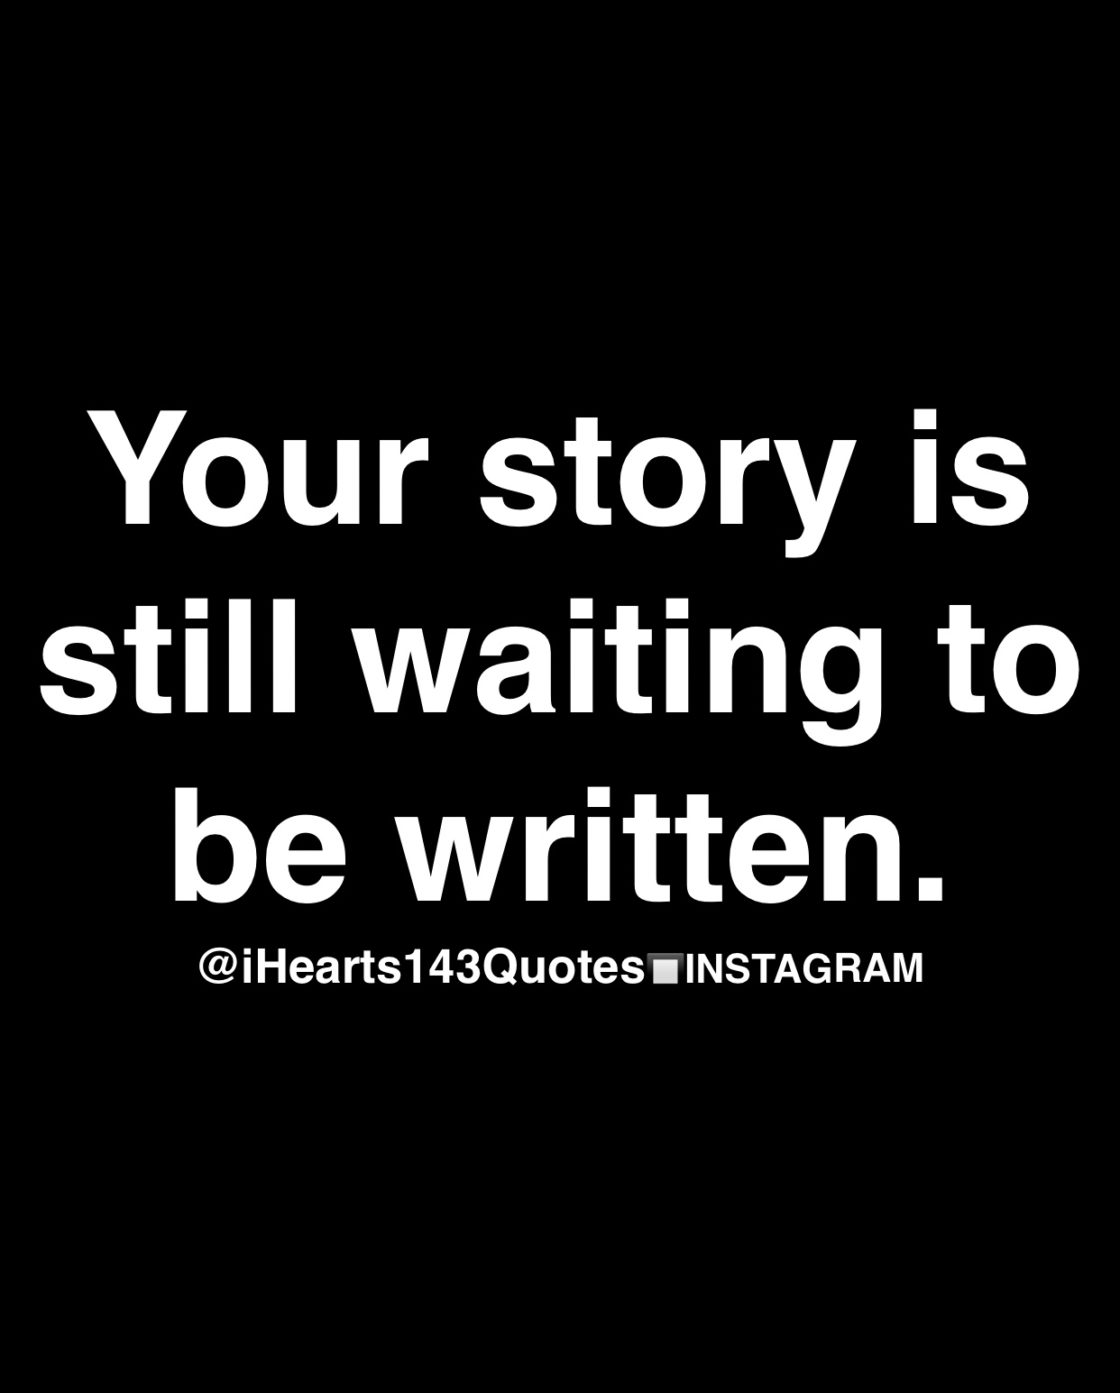 Motivational Words Daily Motivational Quotes  Ihearts143Quotes